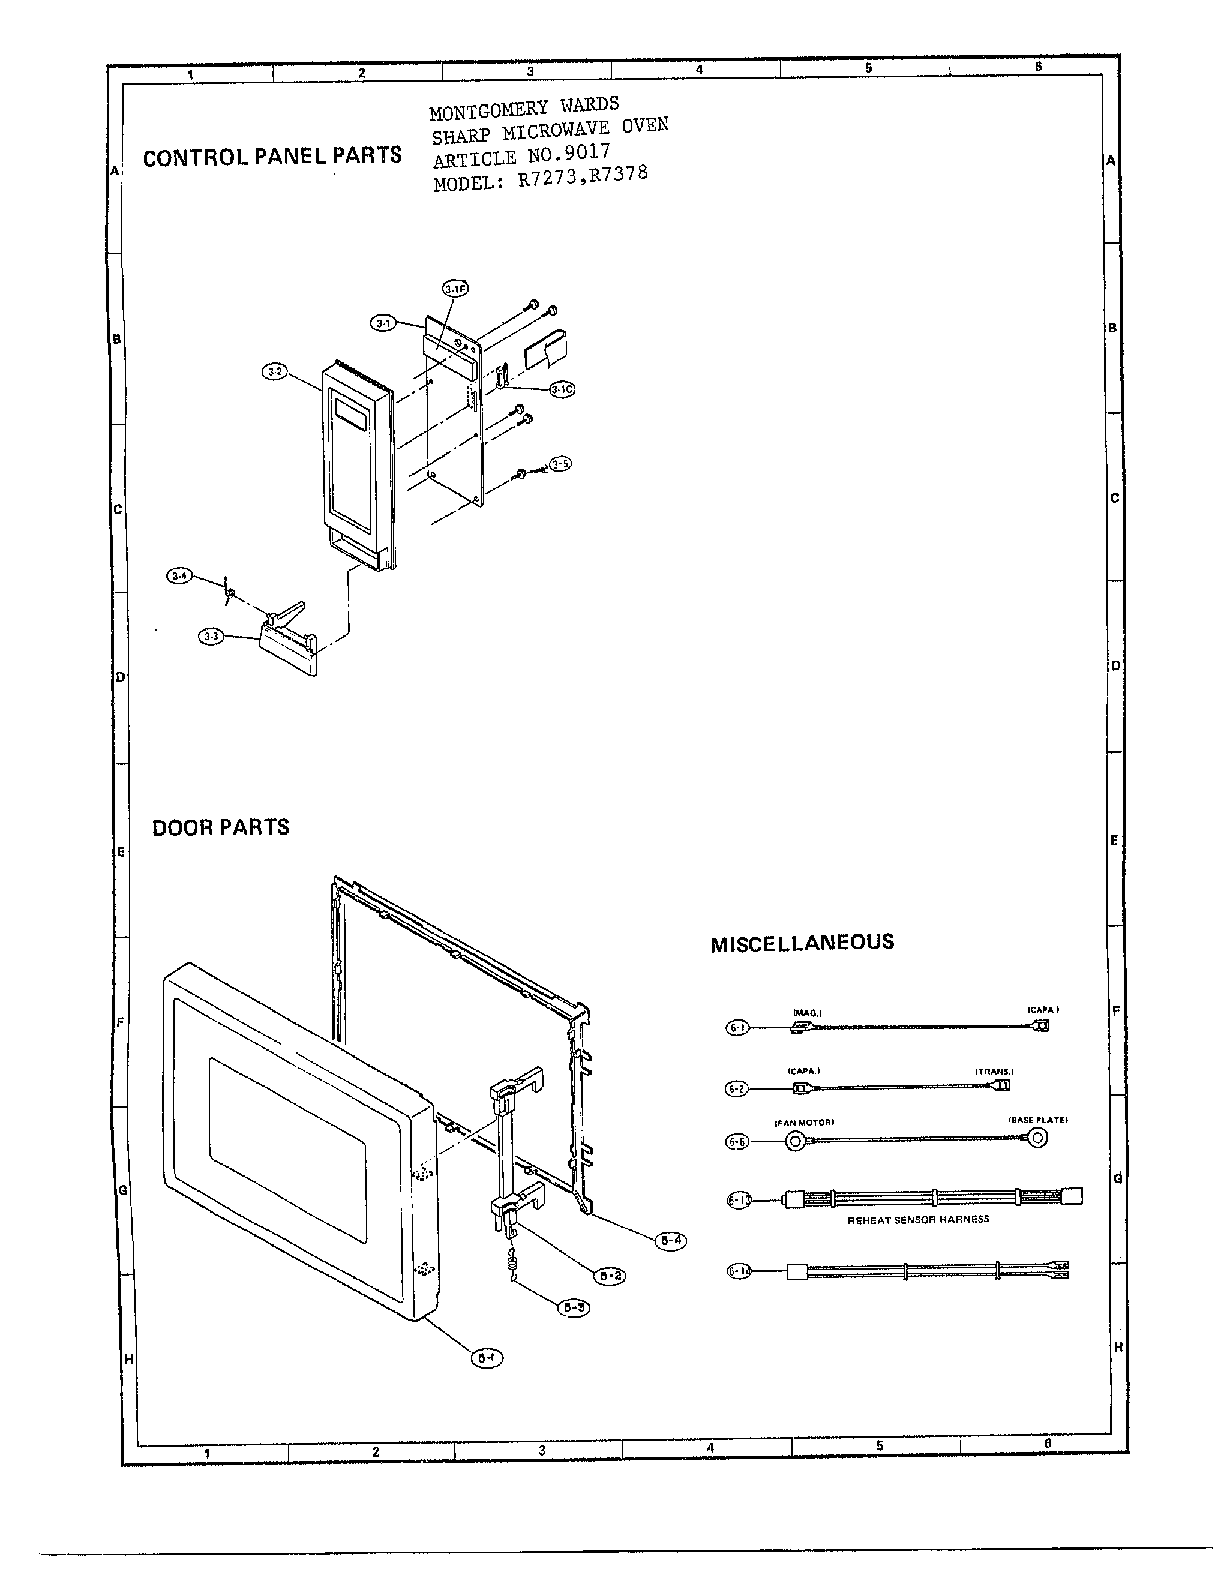 Sharp R-7378 microwave oven complete diagram